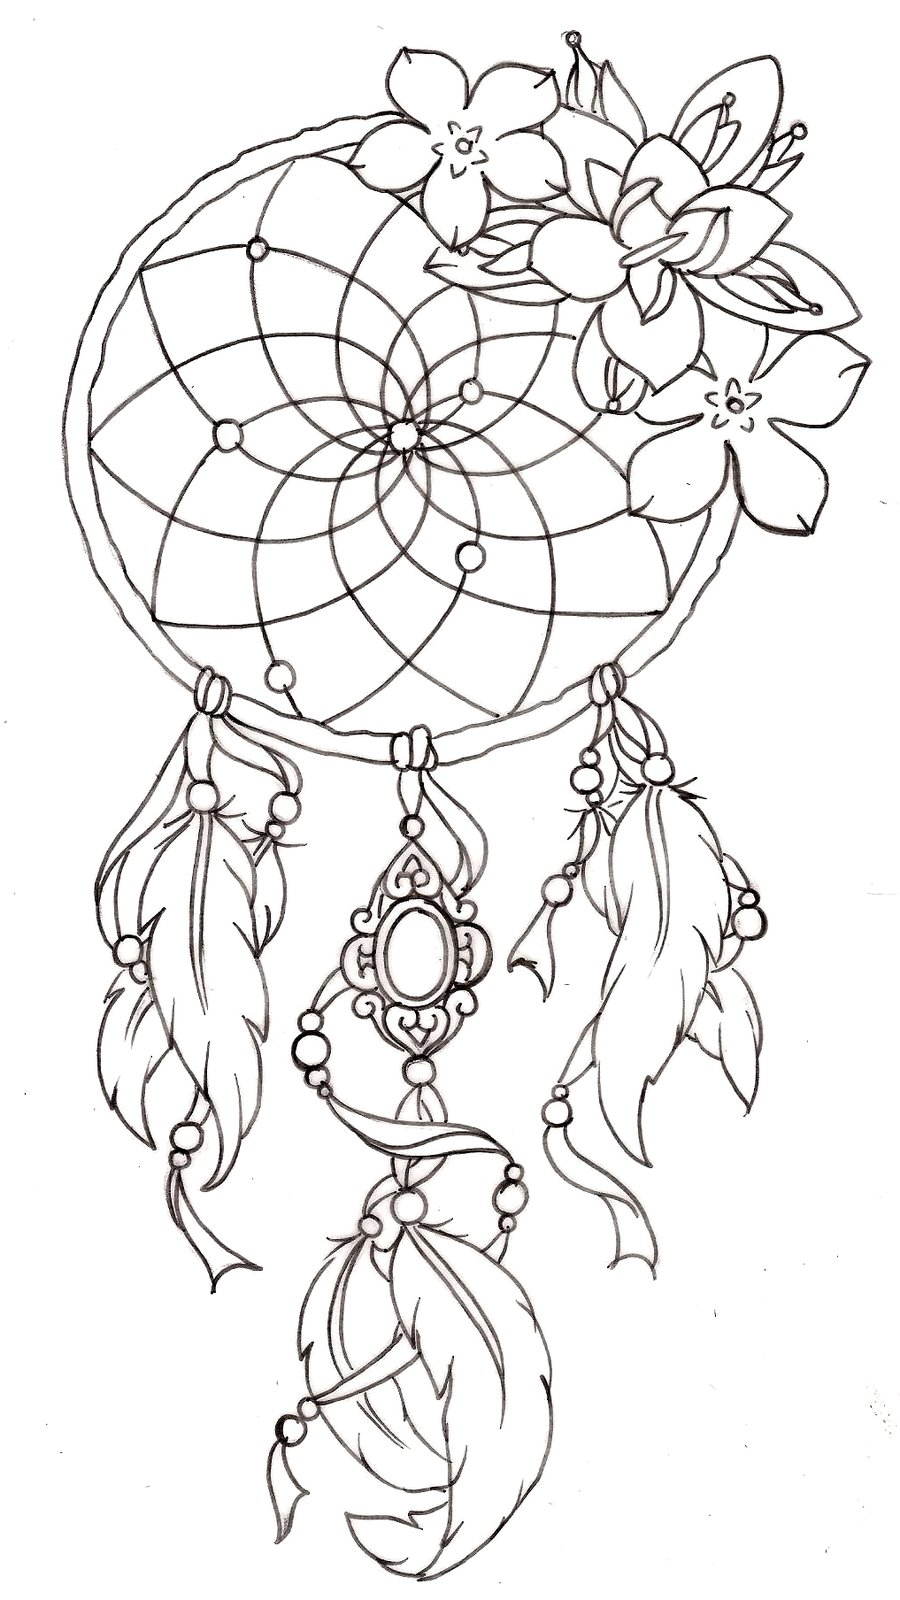 Dreamcatcher tattoos designs ideas and meaning tattoos for Dreamcatcher tattoo template